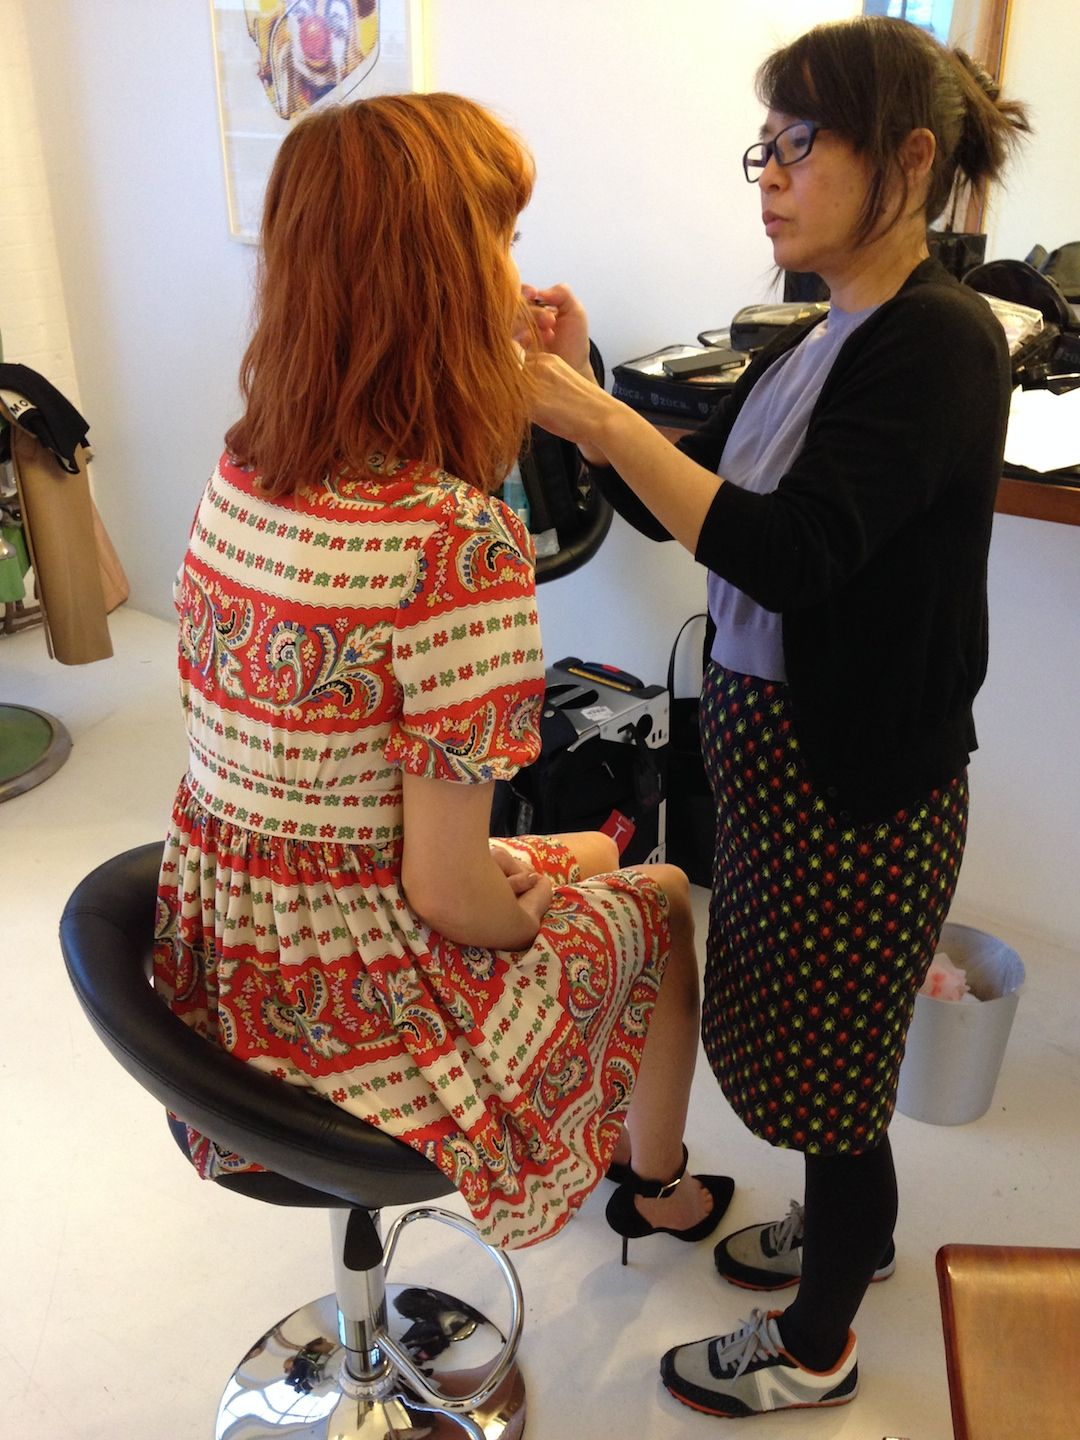 A little behind the scenes action our Fashion magazine shoot #johnlewis